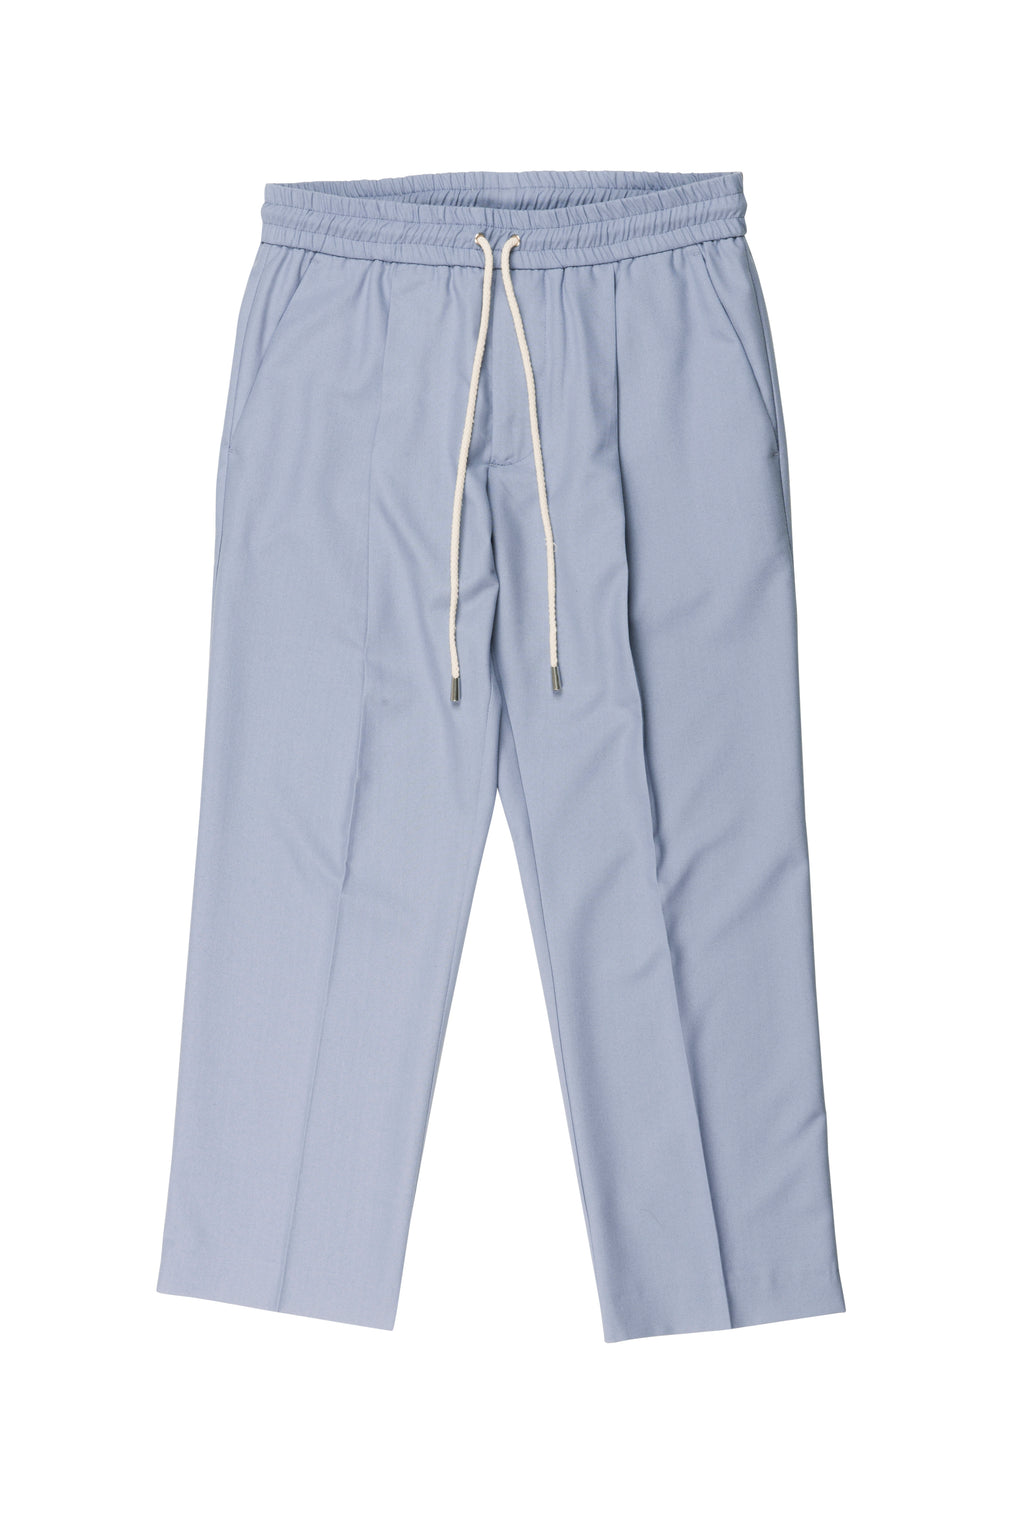 martin asbjørn cropped drawstring suit pants for men